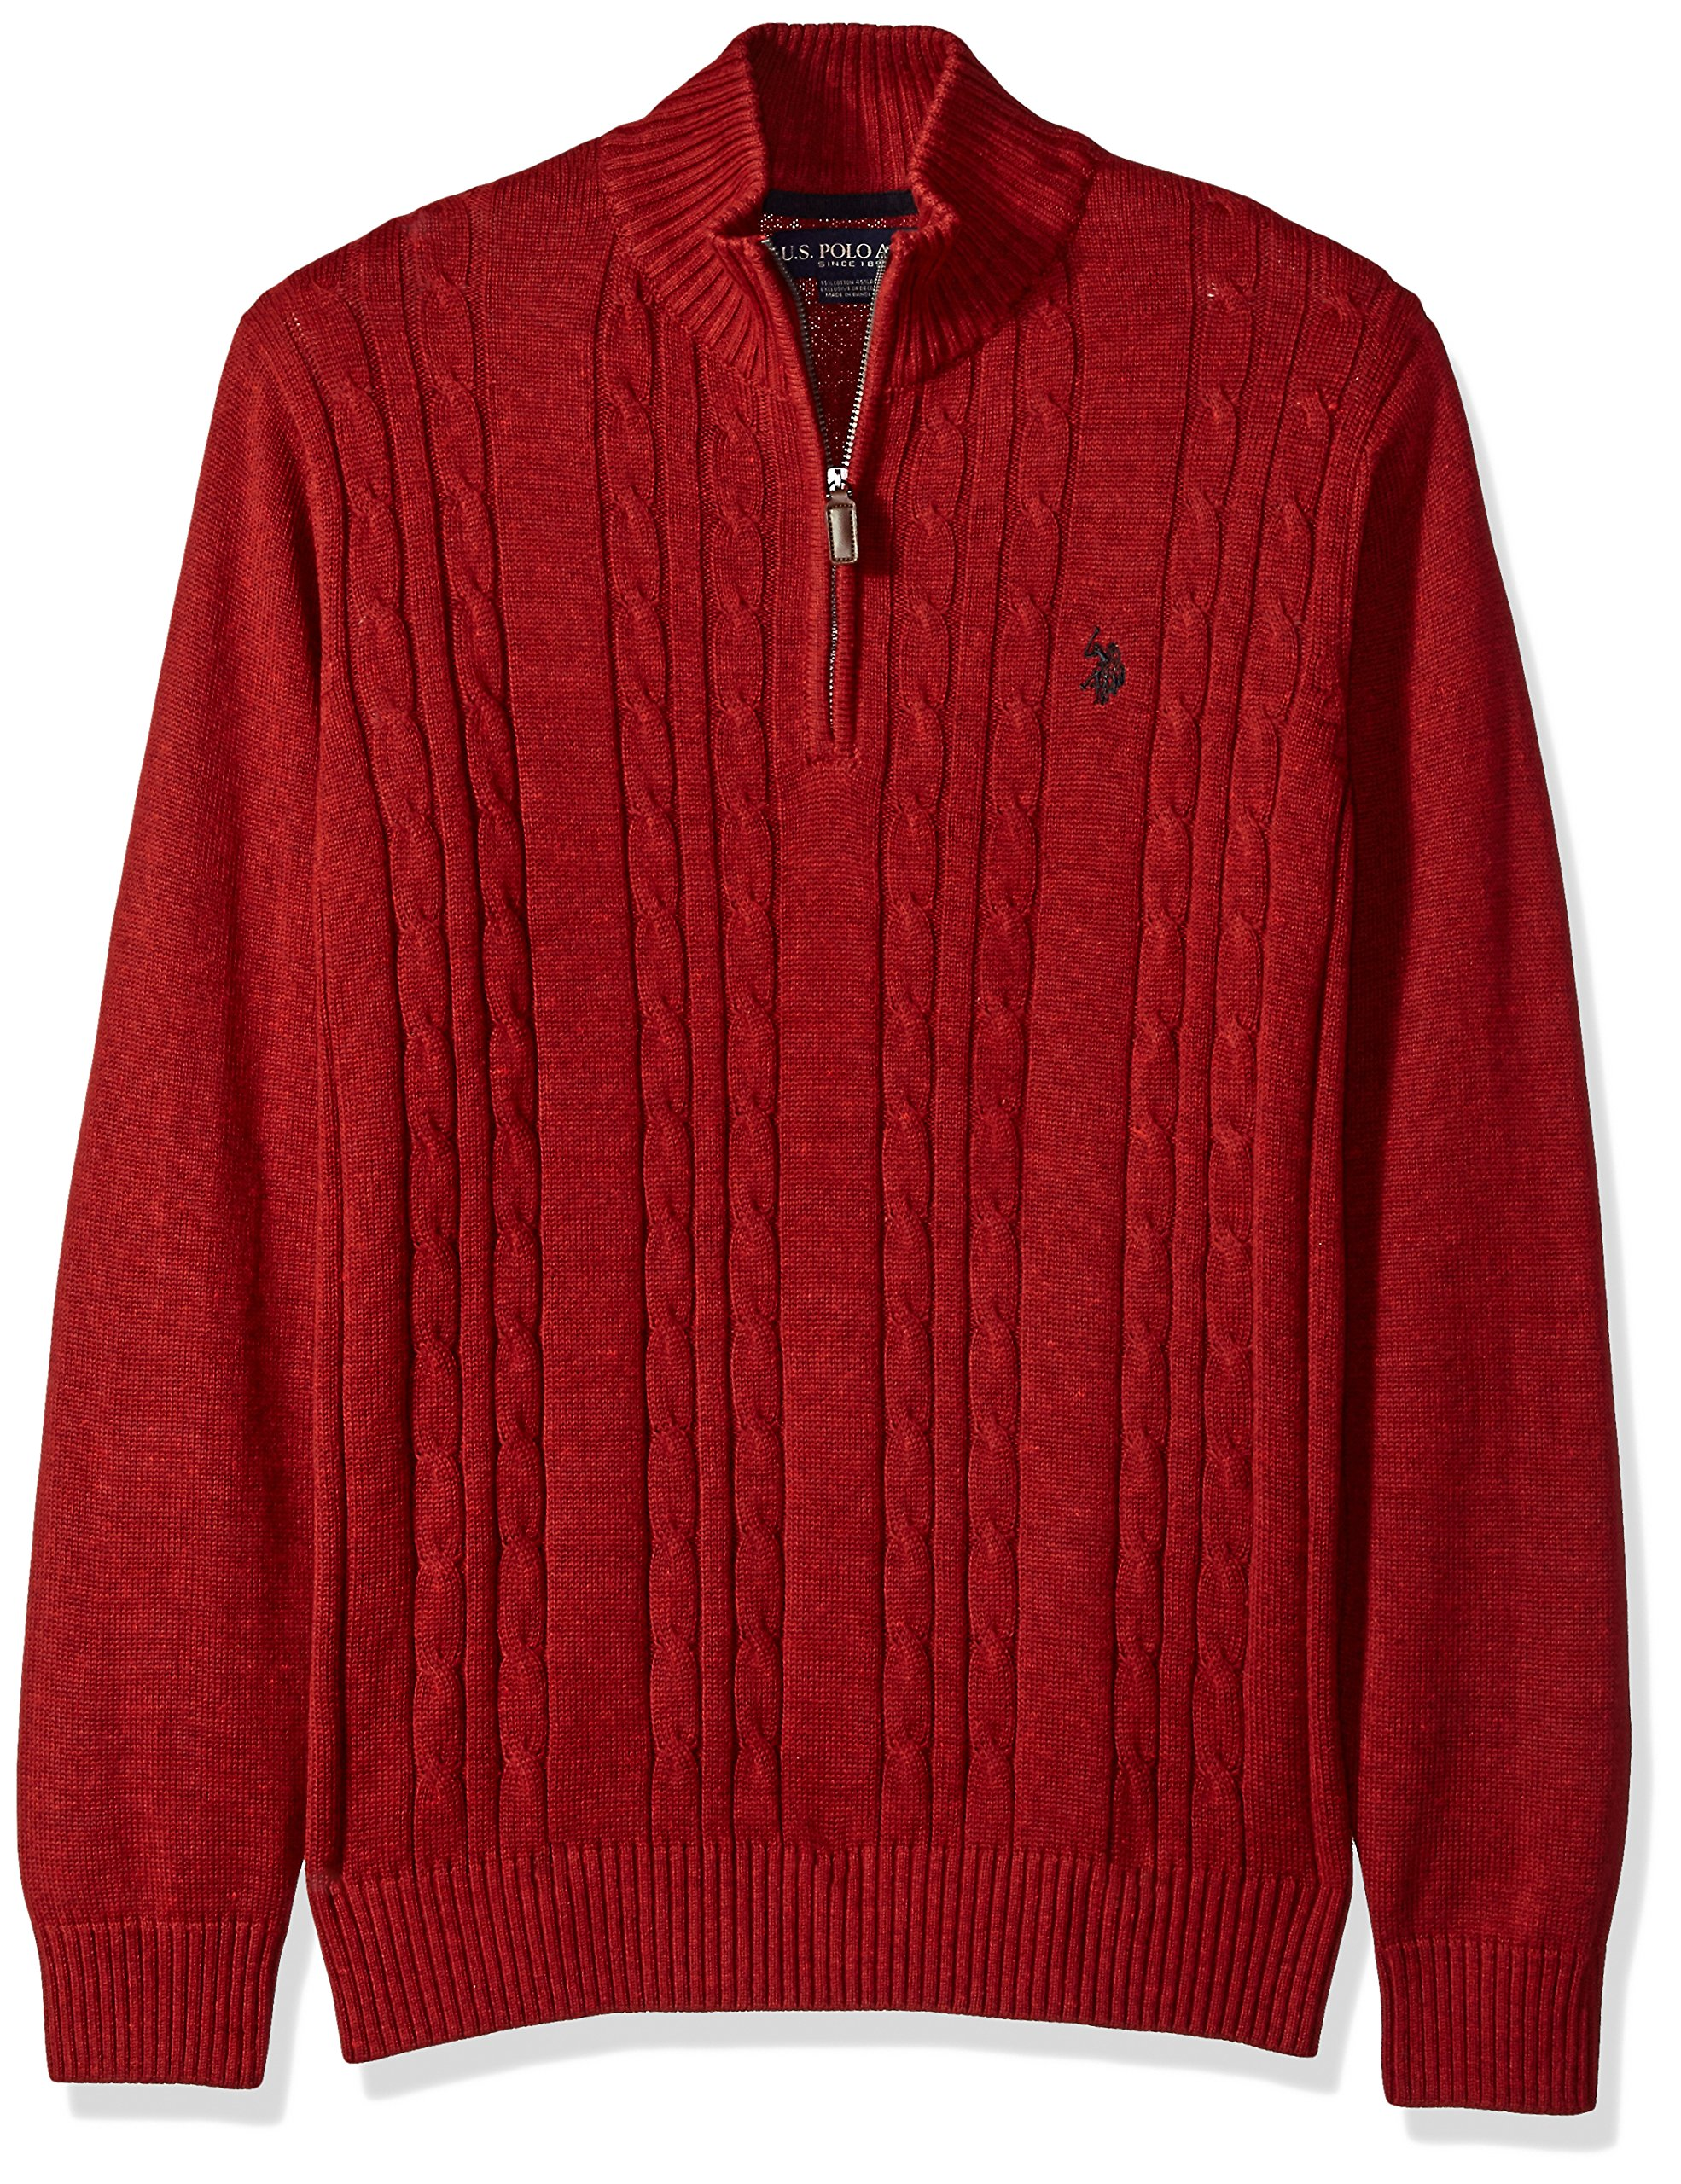 U.S. Polo Assn. Men's Cable Knit 1/4 Zip Sweater, Strawberry Heather, X-Large by U.S. Polo Assn.